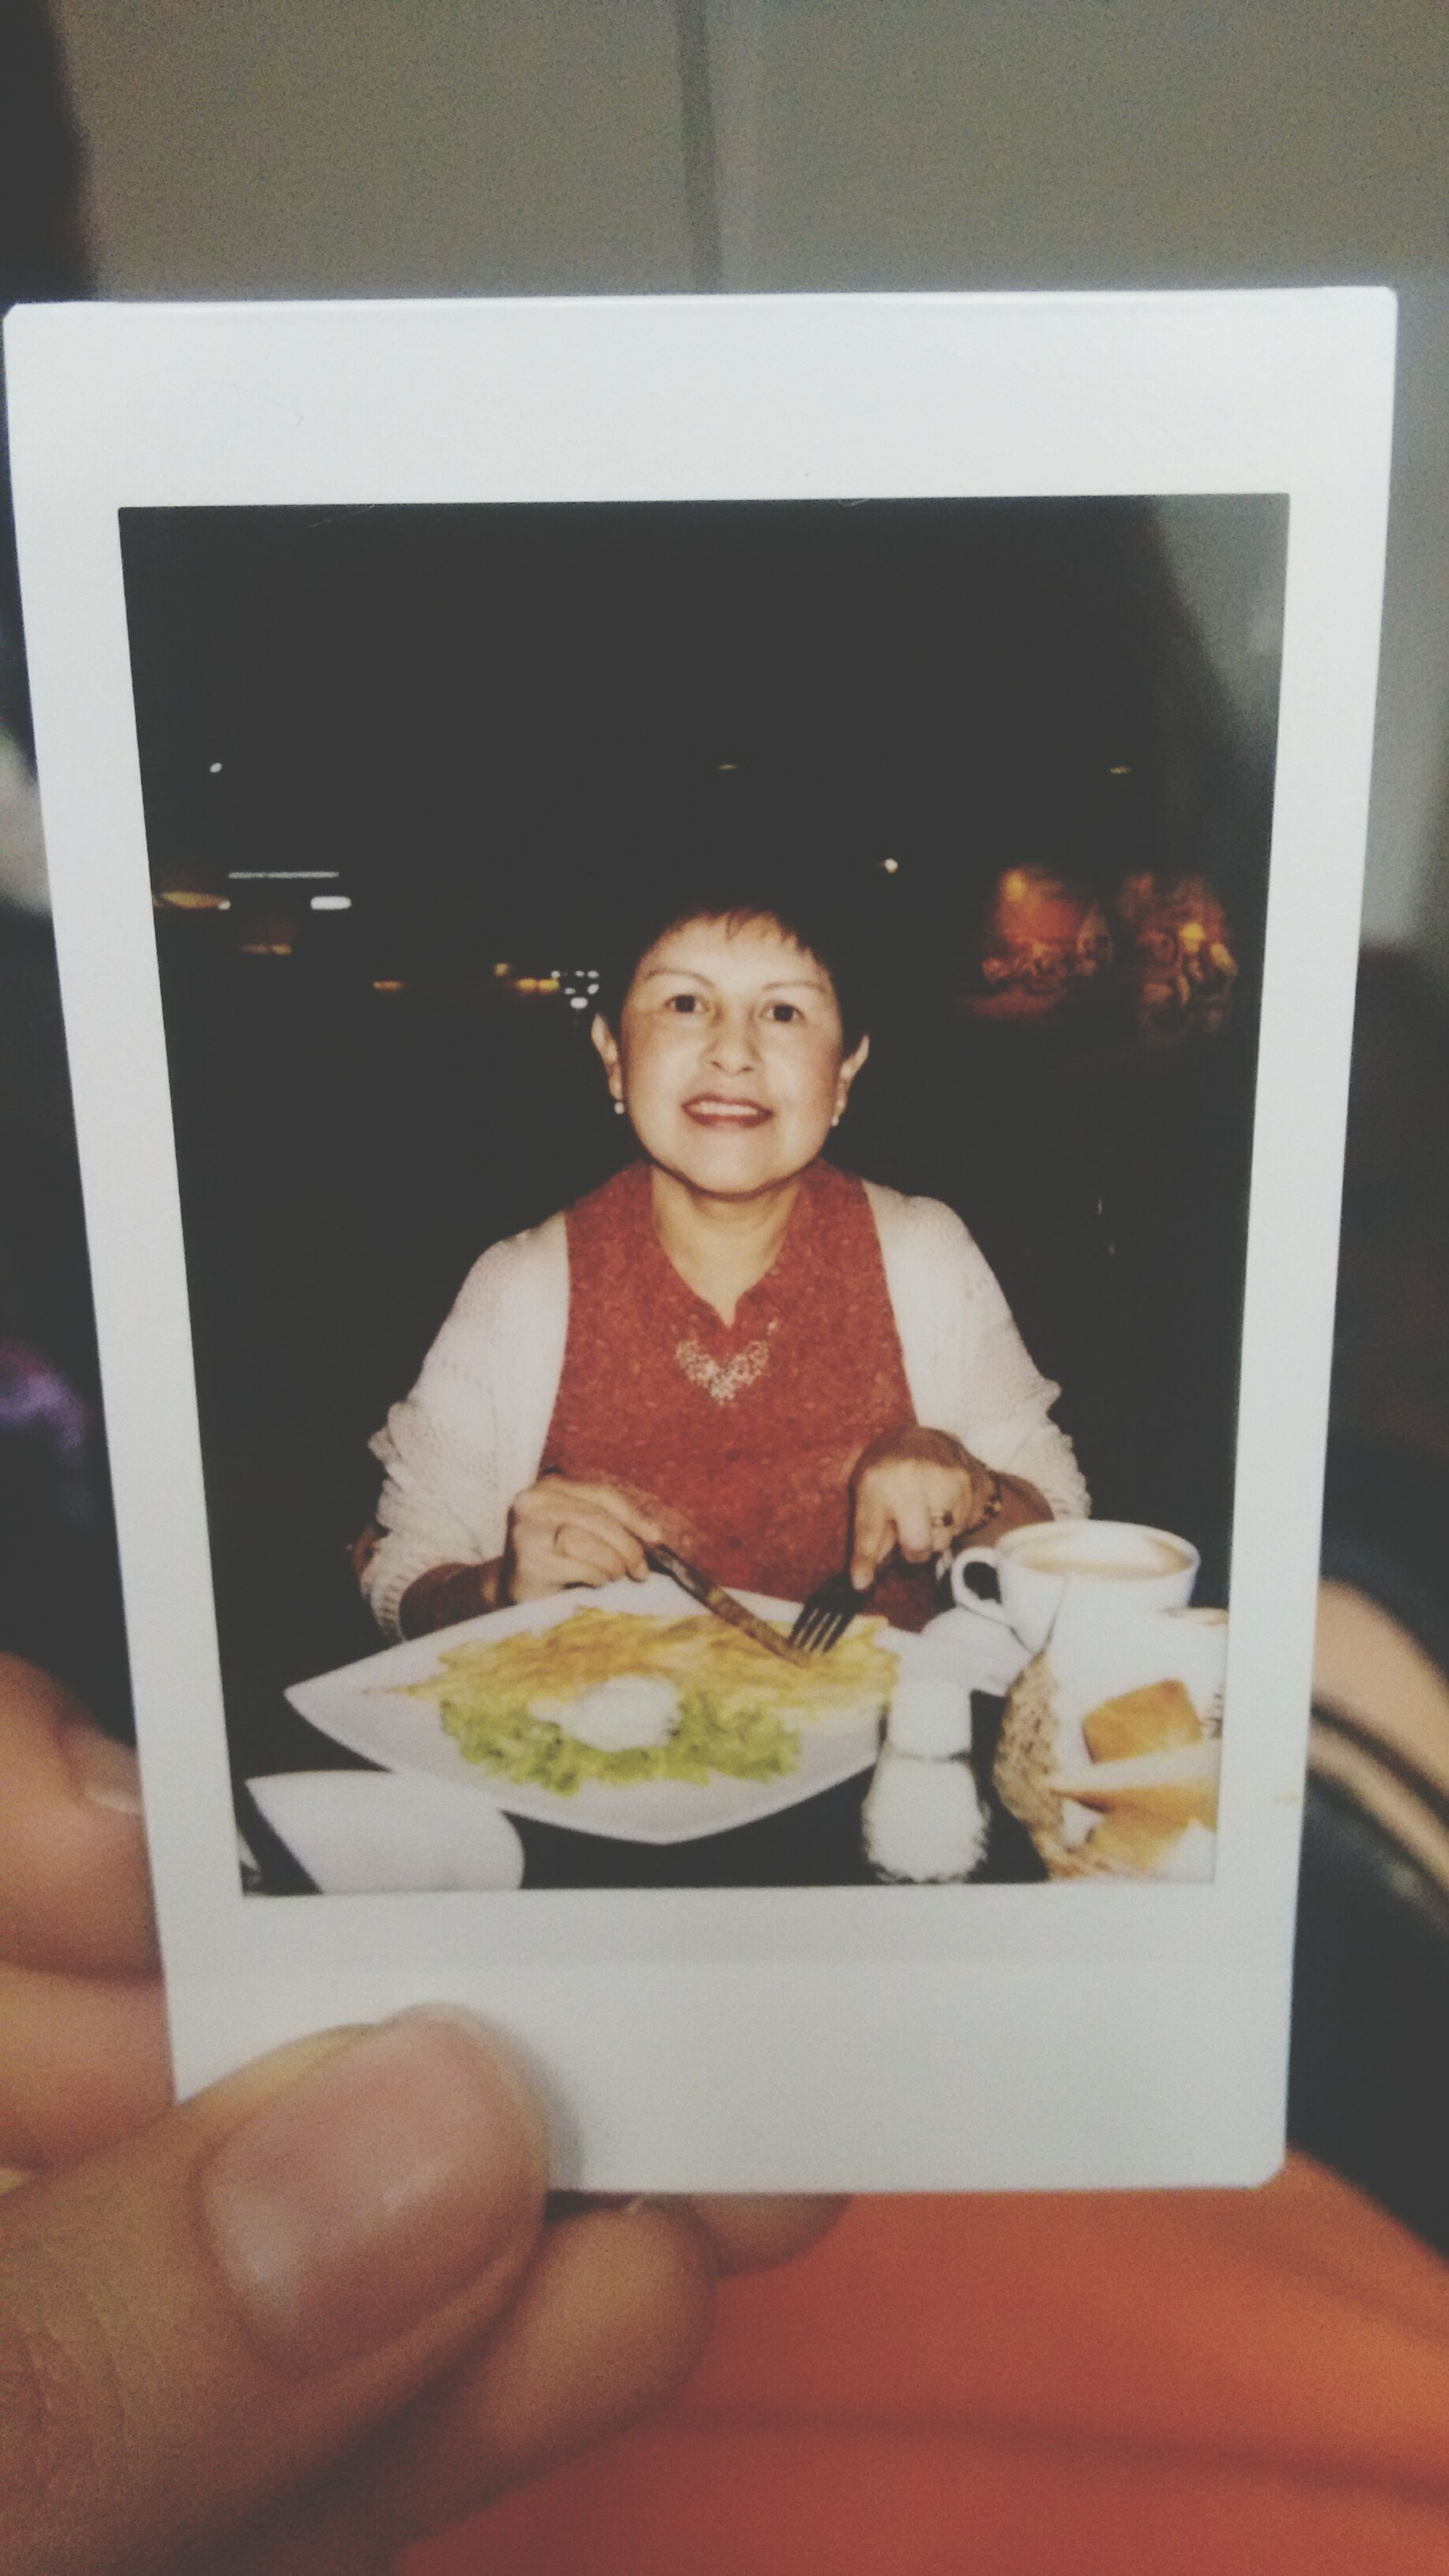 food and drink, food, indoors, holding, lifestyles, leisure activity, freshness, person, plate, ready-to-eat, table, indulgence, sweet food, casual clothing, sitting, healthy eating, childhood